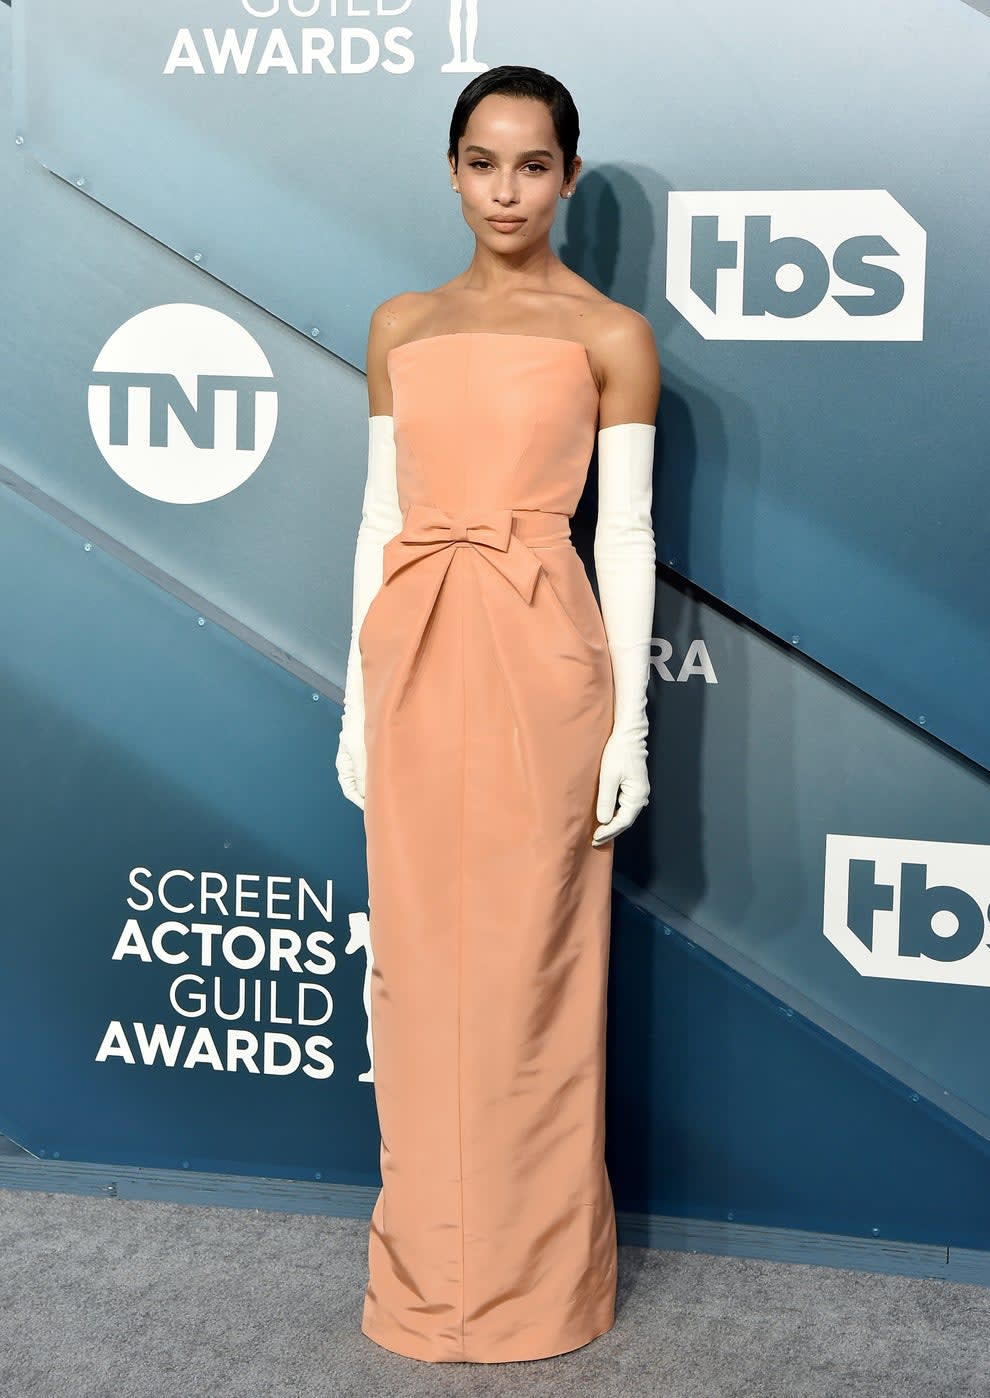 Zoe at a step and repeat in long sleeveless gown with arm length gloves